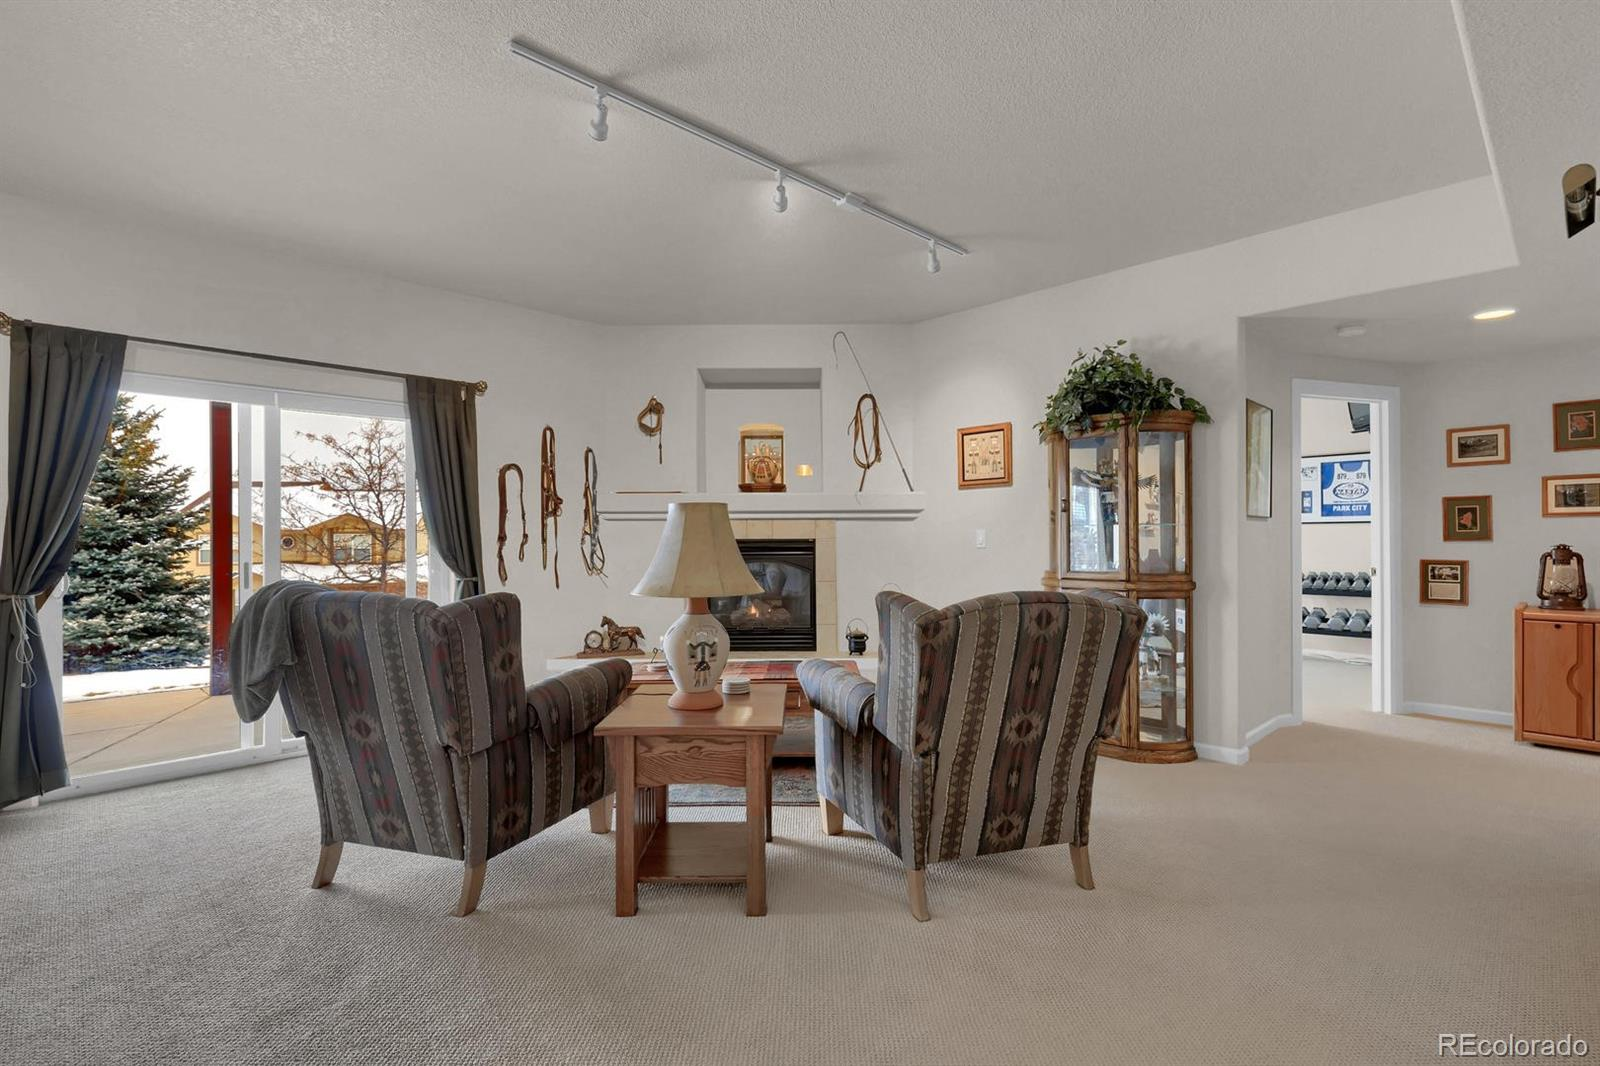 MLS# 5159811 - 28 - 207 Green Rock Place, Monument, CO 80132